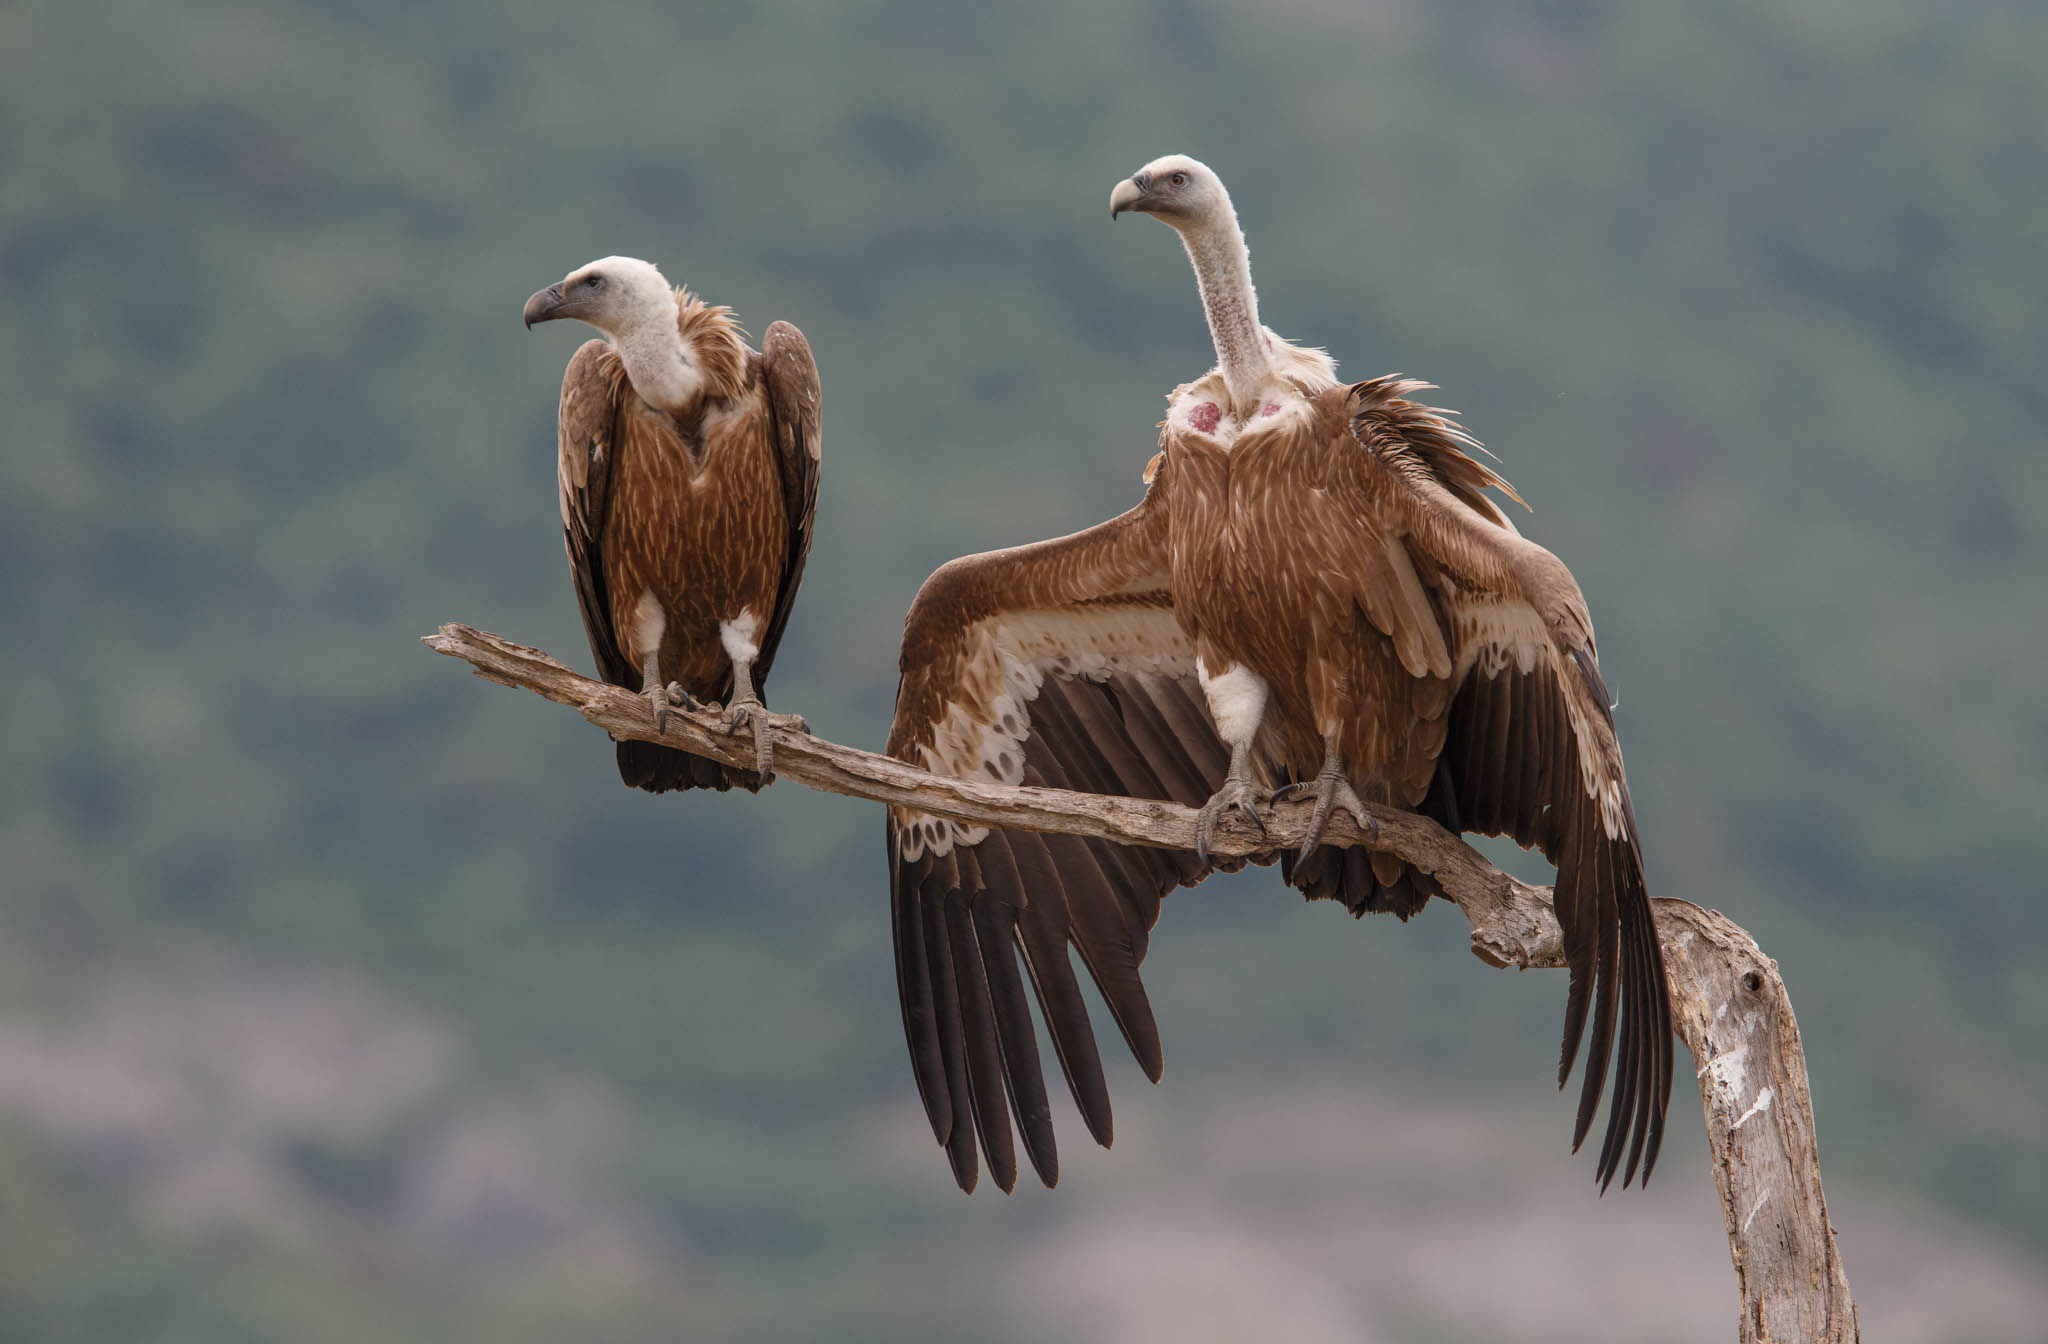 Griffon vultures (pictured here) have had another successful breeding season in the Rhodope Mountains rewilding area, with 62 young birds fully fledged.